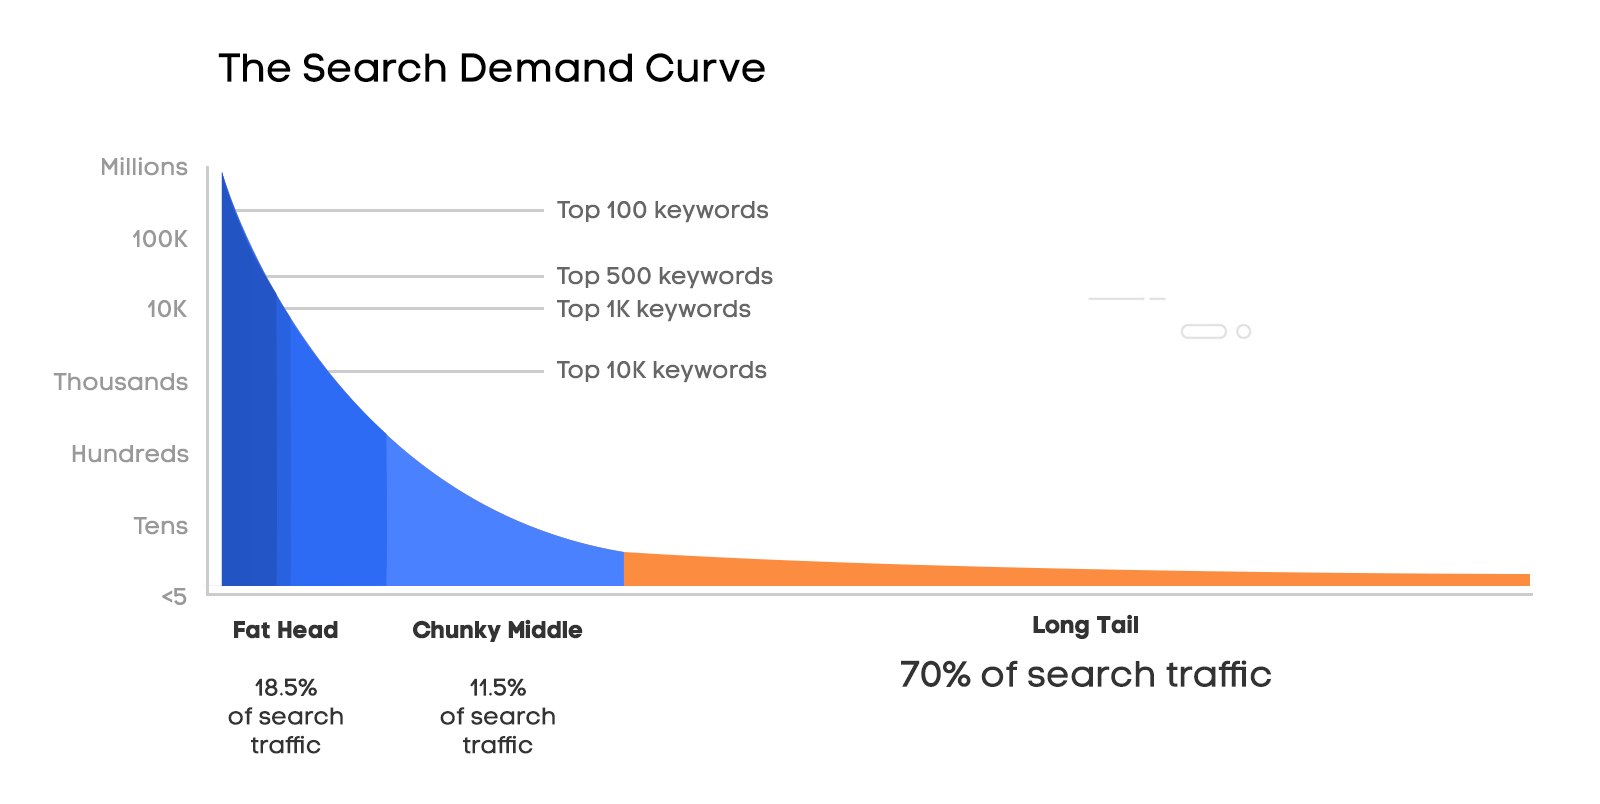 Long tail keywords account for 70% of all search traffic